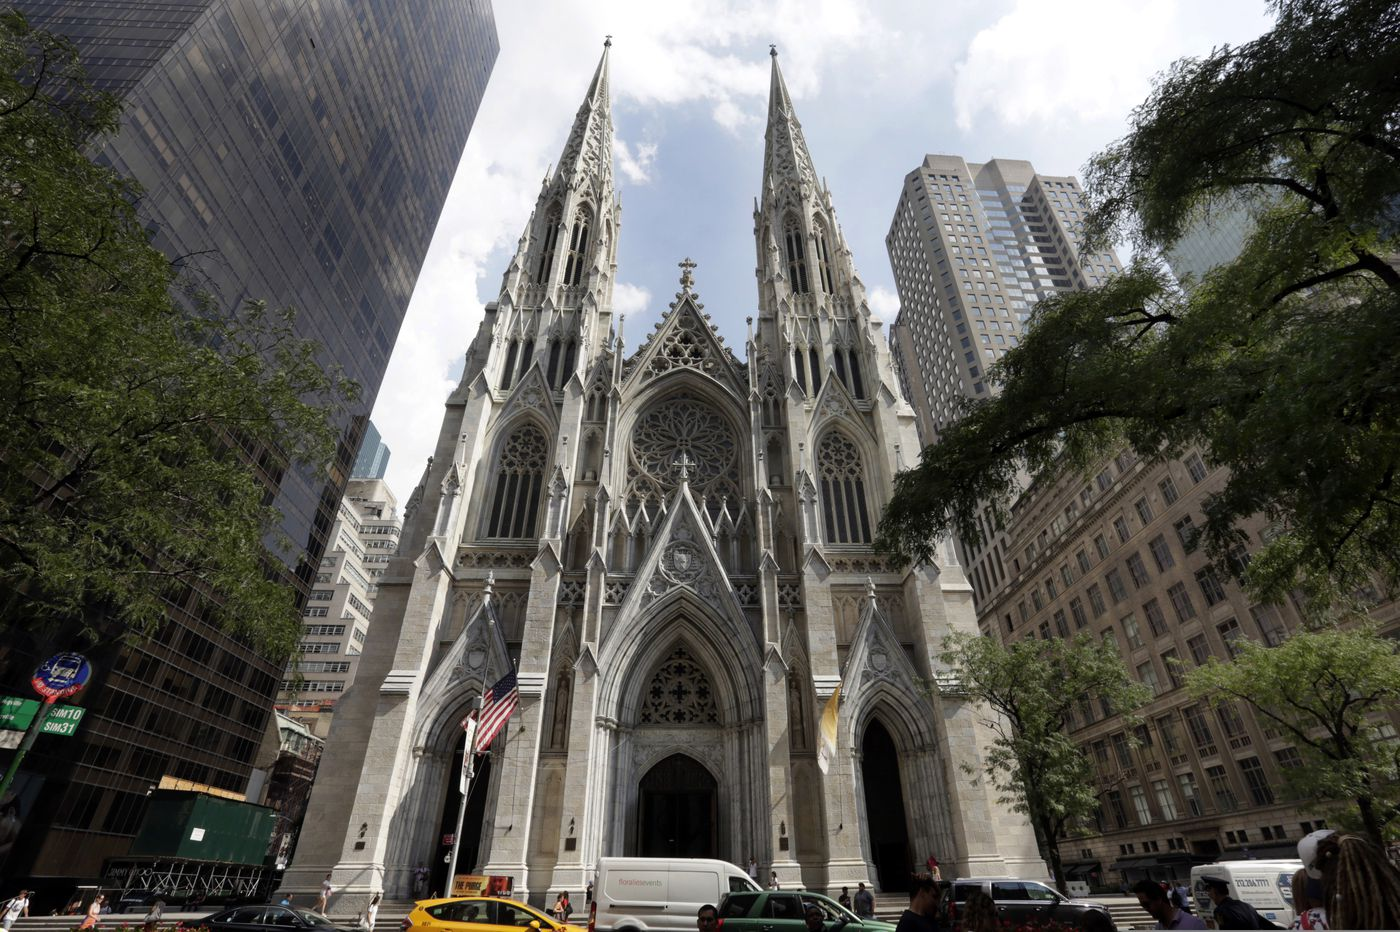 NYPD: N.J. man tried to enter St. Patrick's Cathedral with gas cans